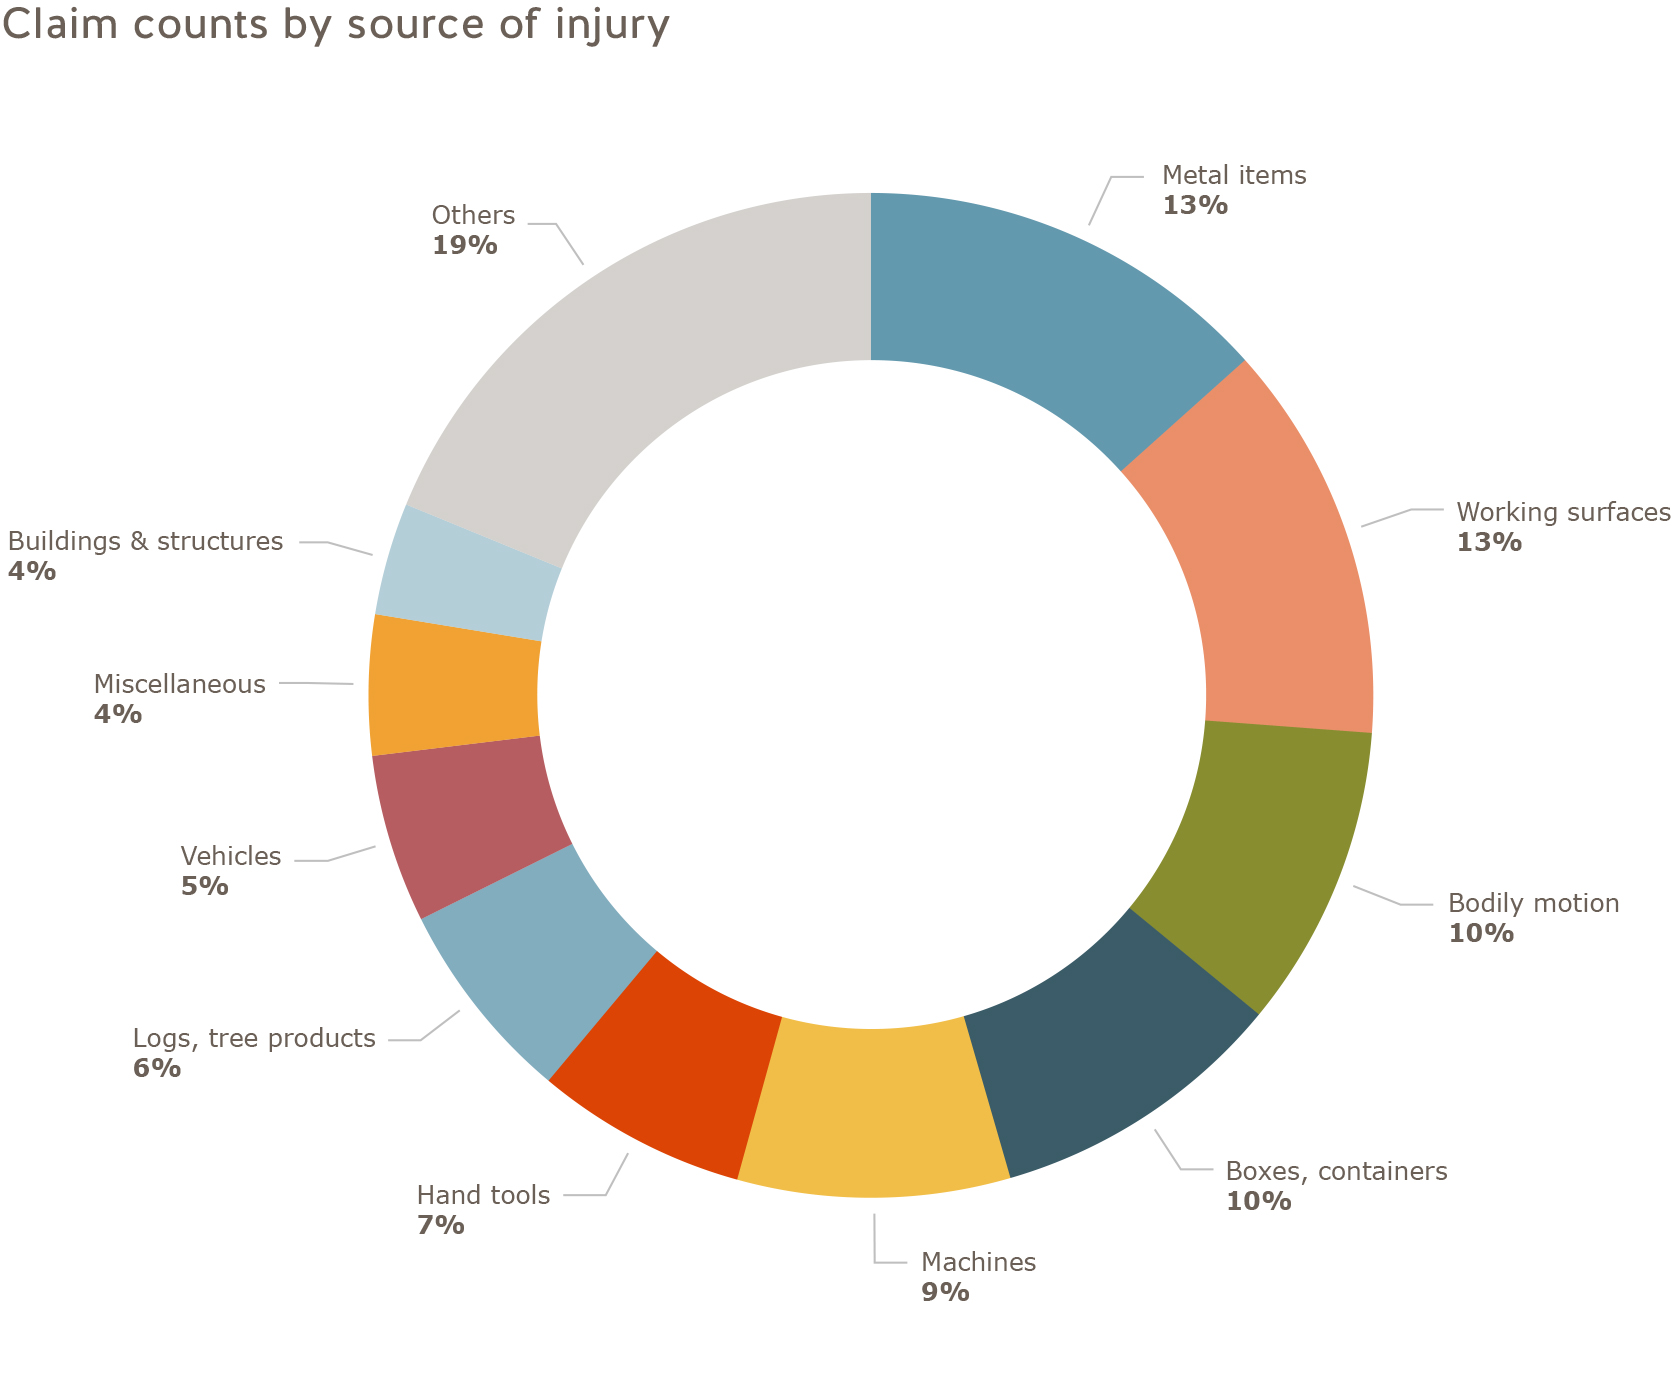 2017 manufacturing sector claim counts by source of injury: Metal items = 13%, Working surfaces = 13%, Bodily motion = 10%, Boxes, containers = 10%, Machines = 9%, Hand tools = 7%,  Logs, tree products = 6%, Vehicles = 5%, Miscellaneous = 4%, Buildings and structures = 4%, Others = 19%.